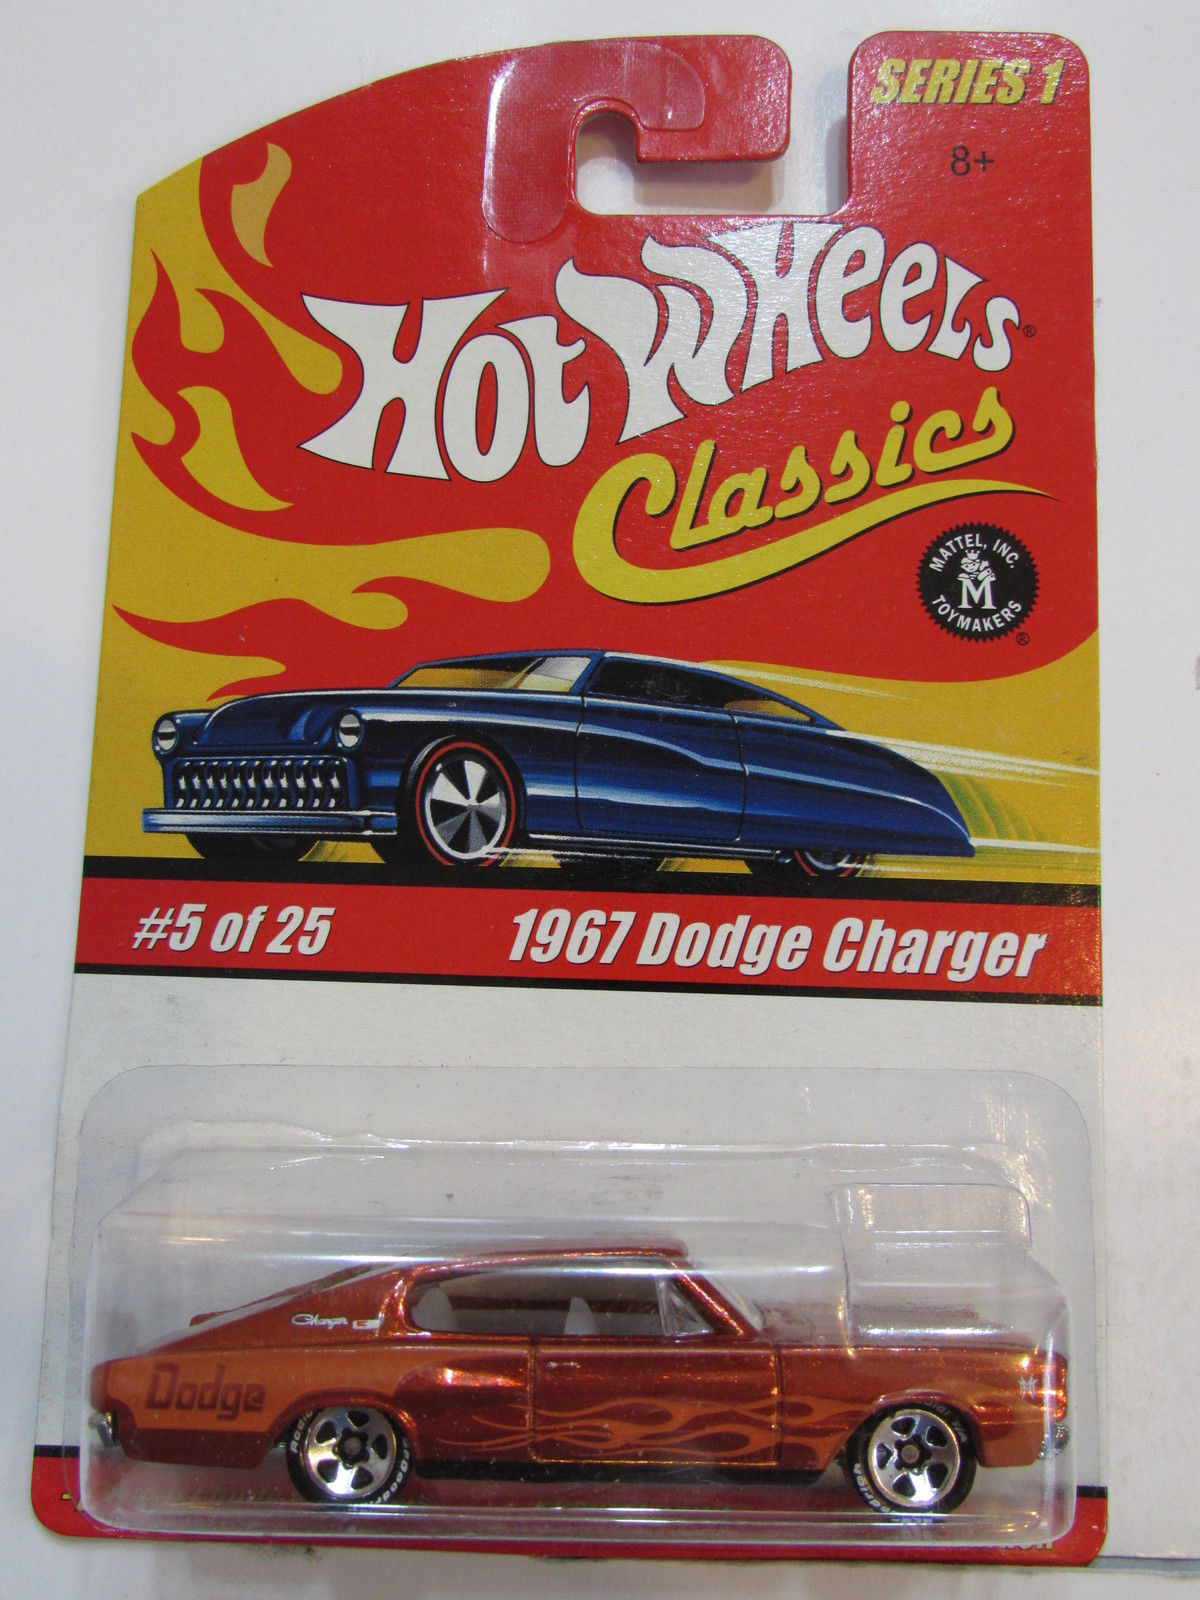 HOT WHEELS CLASSICS SERIES 1 #5/25 1967 DODGE CHARGER ORANGE